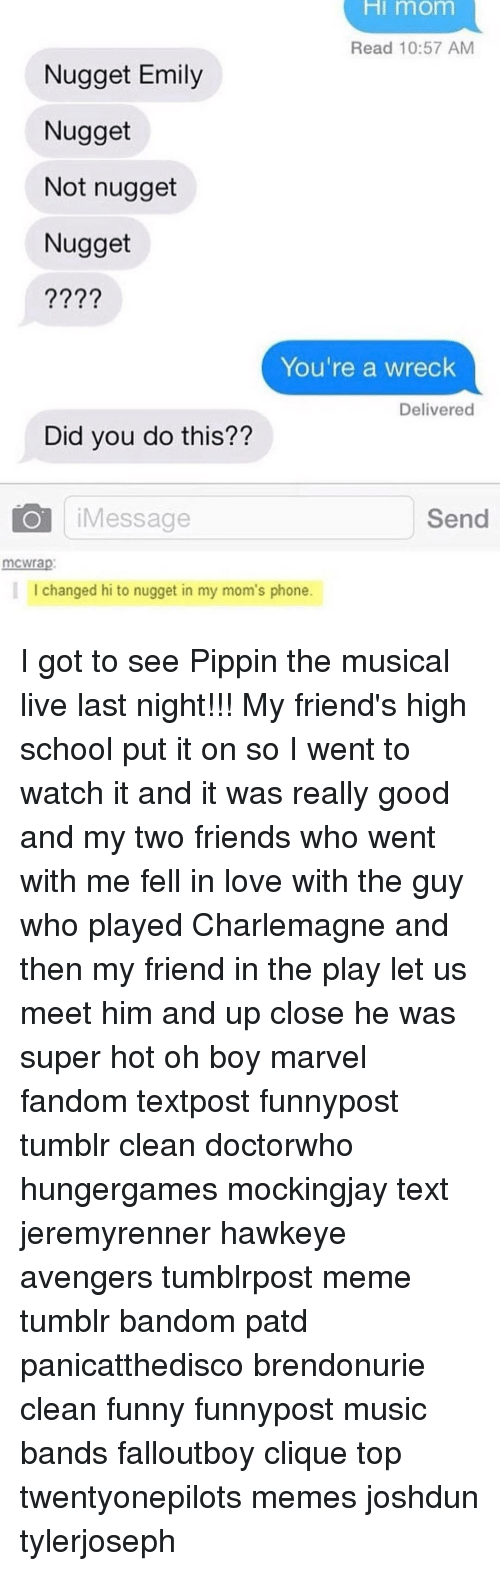 Pippin: HI mom  Read 10:57 AM  Nugget Emily  Nugget  Not nugget  Nugget  You're a wreck  Delivered  Did you do this??  Send  Message  mCWrap  I changed hi to nugget in my mom's phone. I got to see Pippin the musical live last night!!! My friend's high school put it on so I went to watch it and it was really good and my two friends who went with me fell in love with the guy who played Charlemagne and then my friend in the play let us meet him and up close he was super hot oh boy marvel fandom textpost funnypost tumblr clean doctorwho hungergames mockingjay text jeremyrenner hawkeye avengers tumblrpost meme tumblr bandom patd panicatthedisco brendonurie clean funny funnypost music bands falloutboy clique top twentyonepilots memes joshdun tylerjoseph